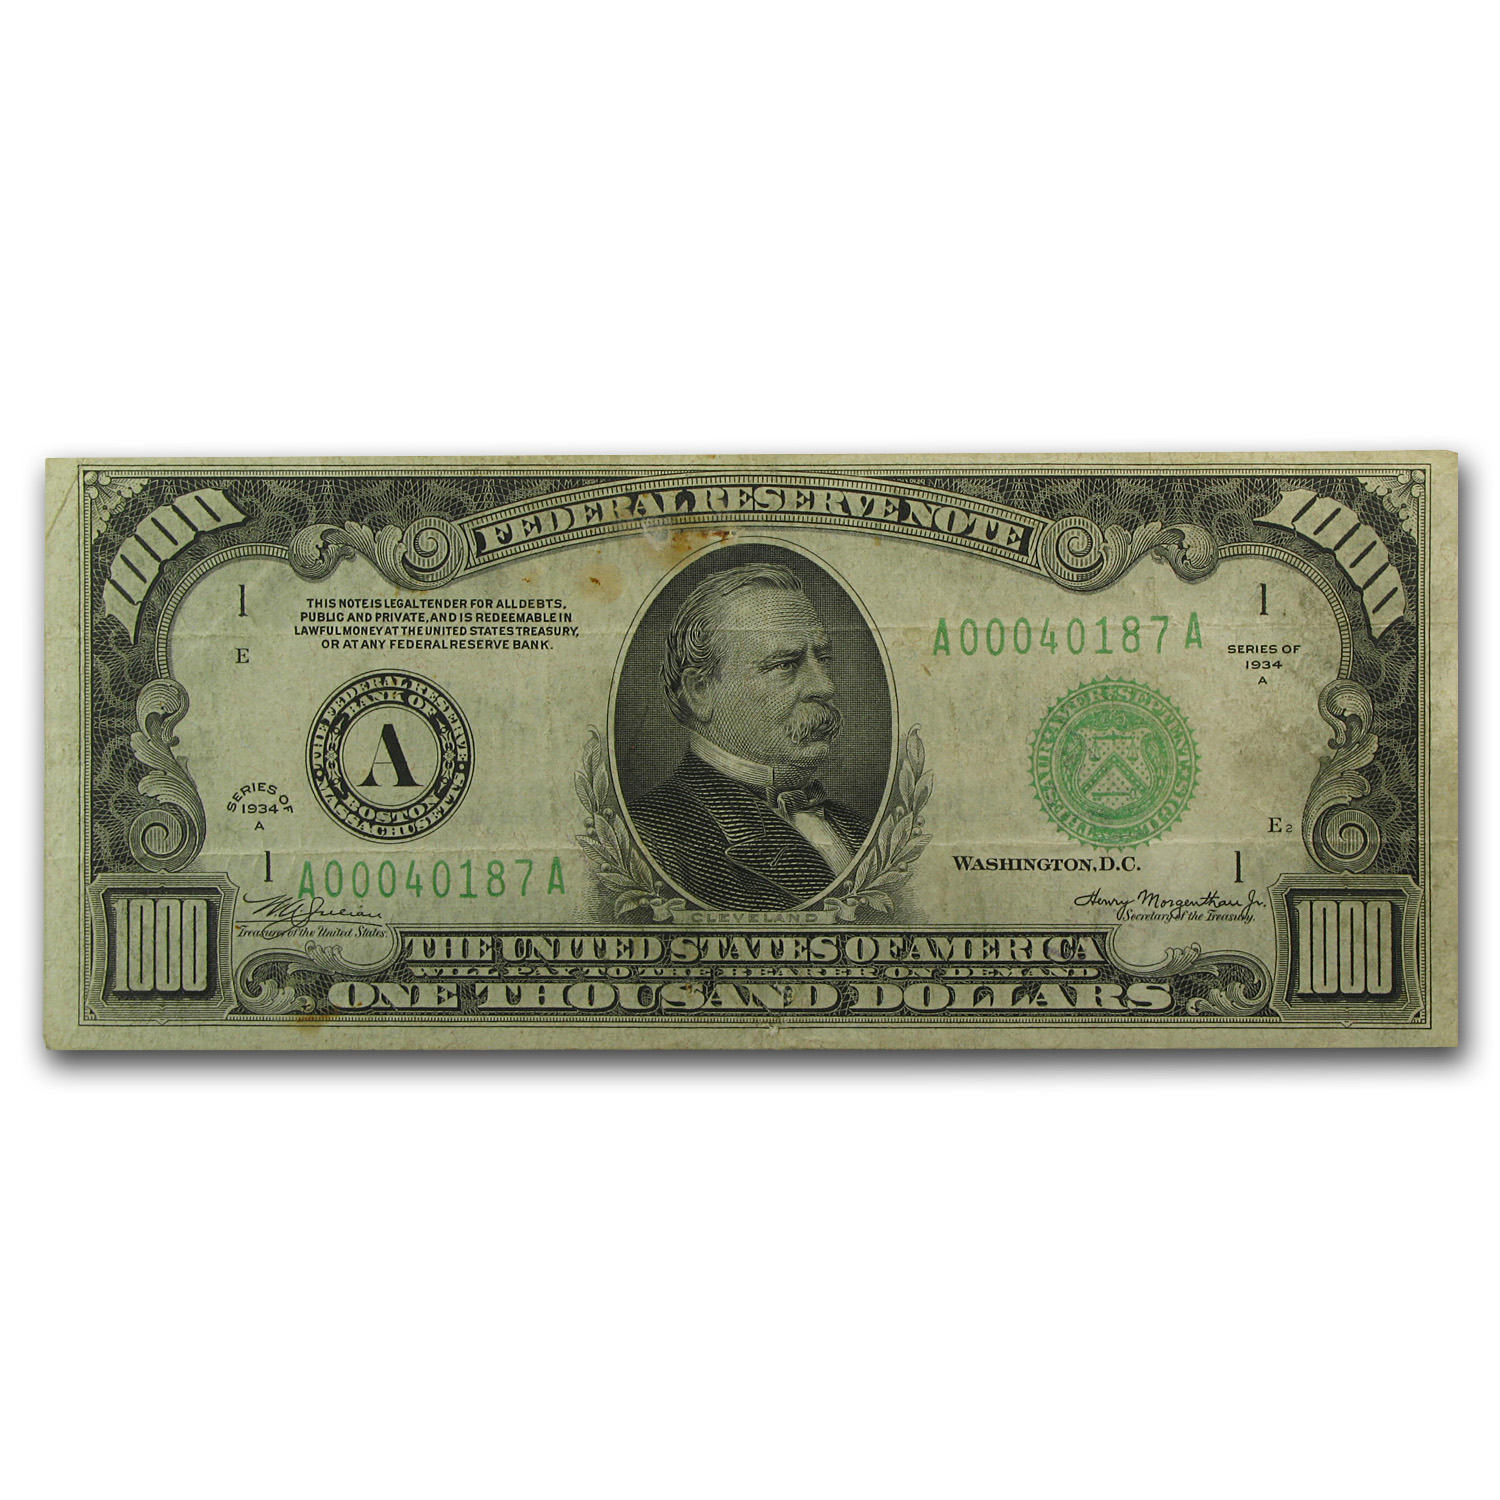 1934-A (A-Boston) $1,000 FRN (Very Fine)